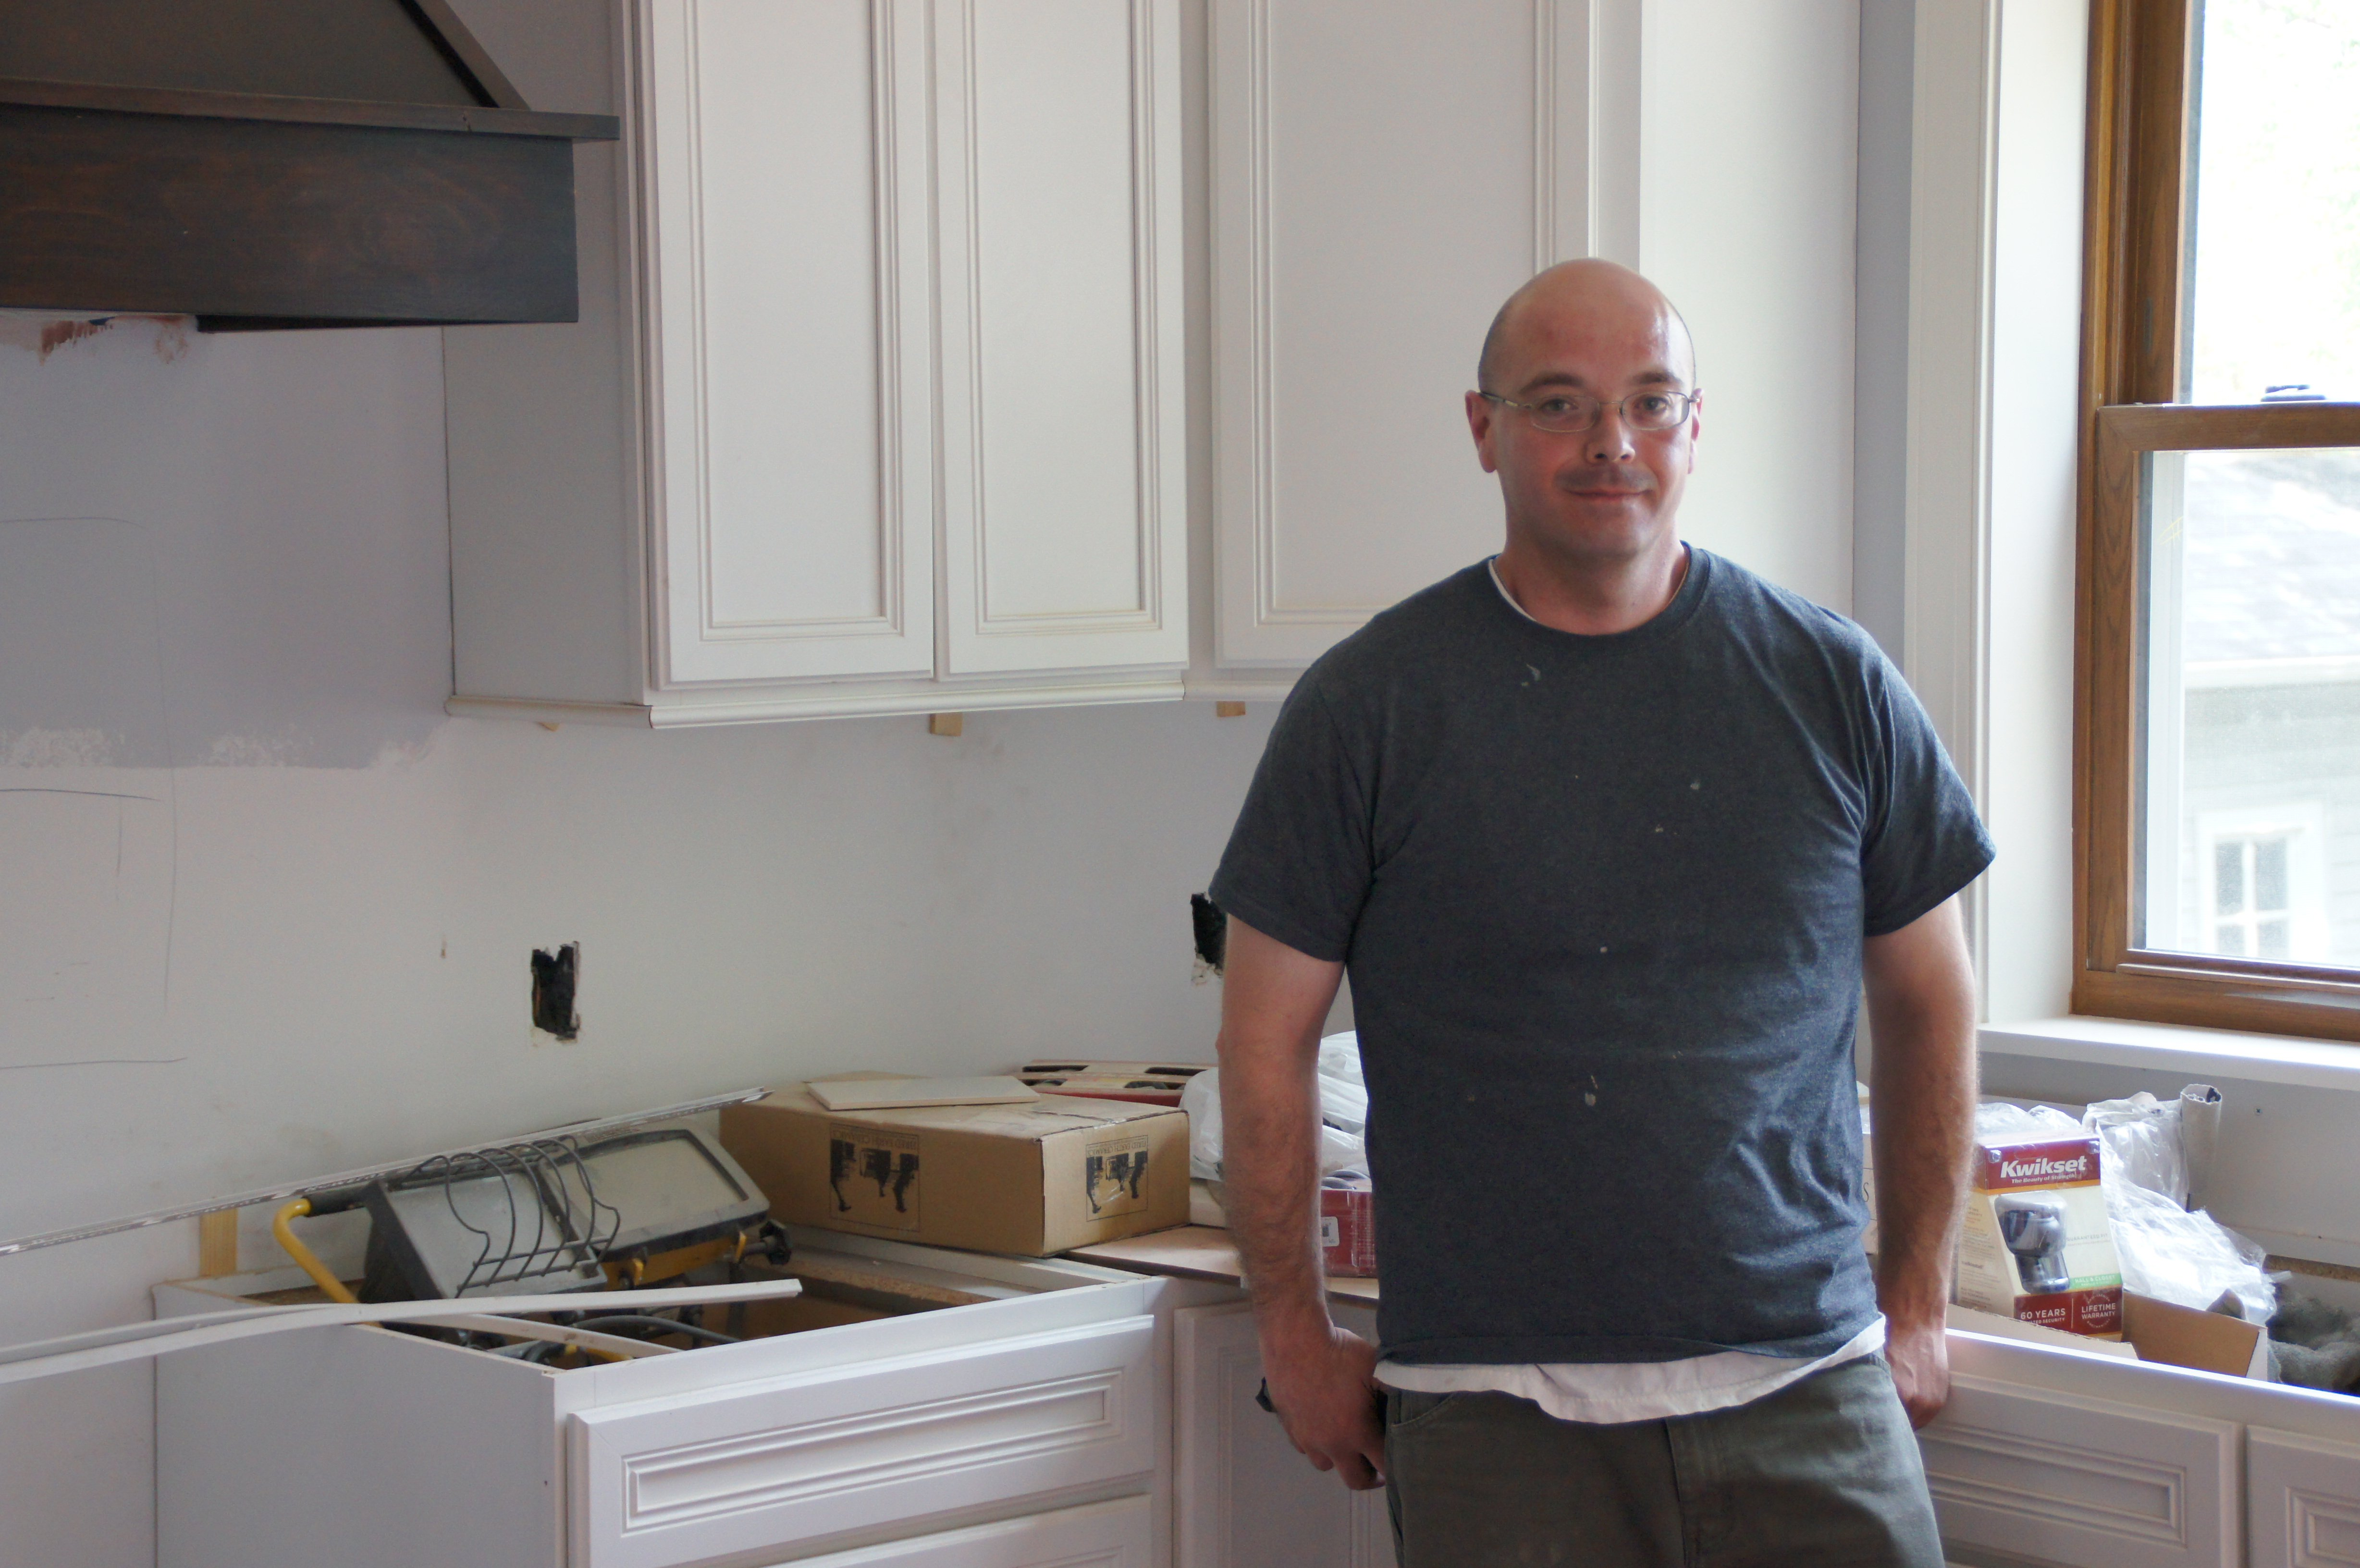 Vincent Lopez, who resides in the Powderhorn neighborhood at a new home he plumbed in St. Paul's Highland neighborhood. His business, Service Tech Plumbing, LLC is located in Brooklyn Park